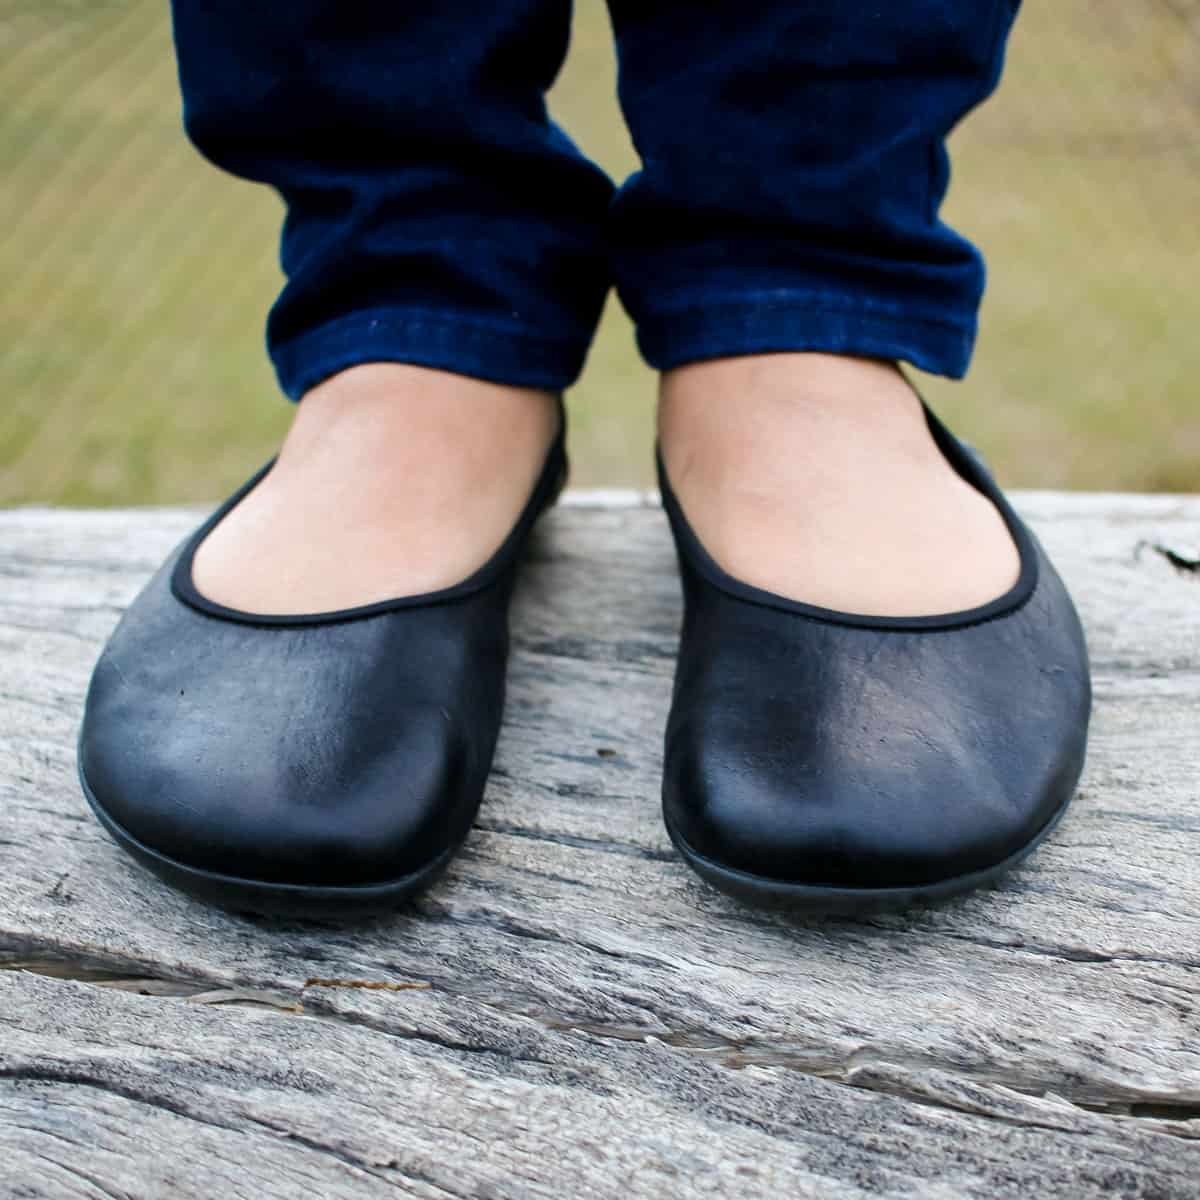 Vivobarefeet daily mom parent portal holiday guide 2018 new shoes